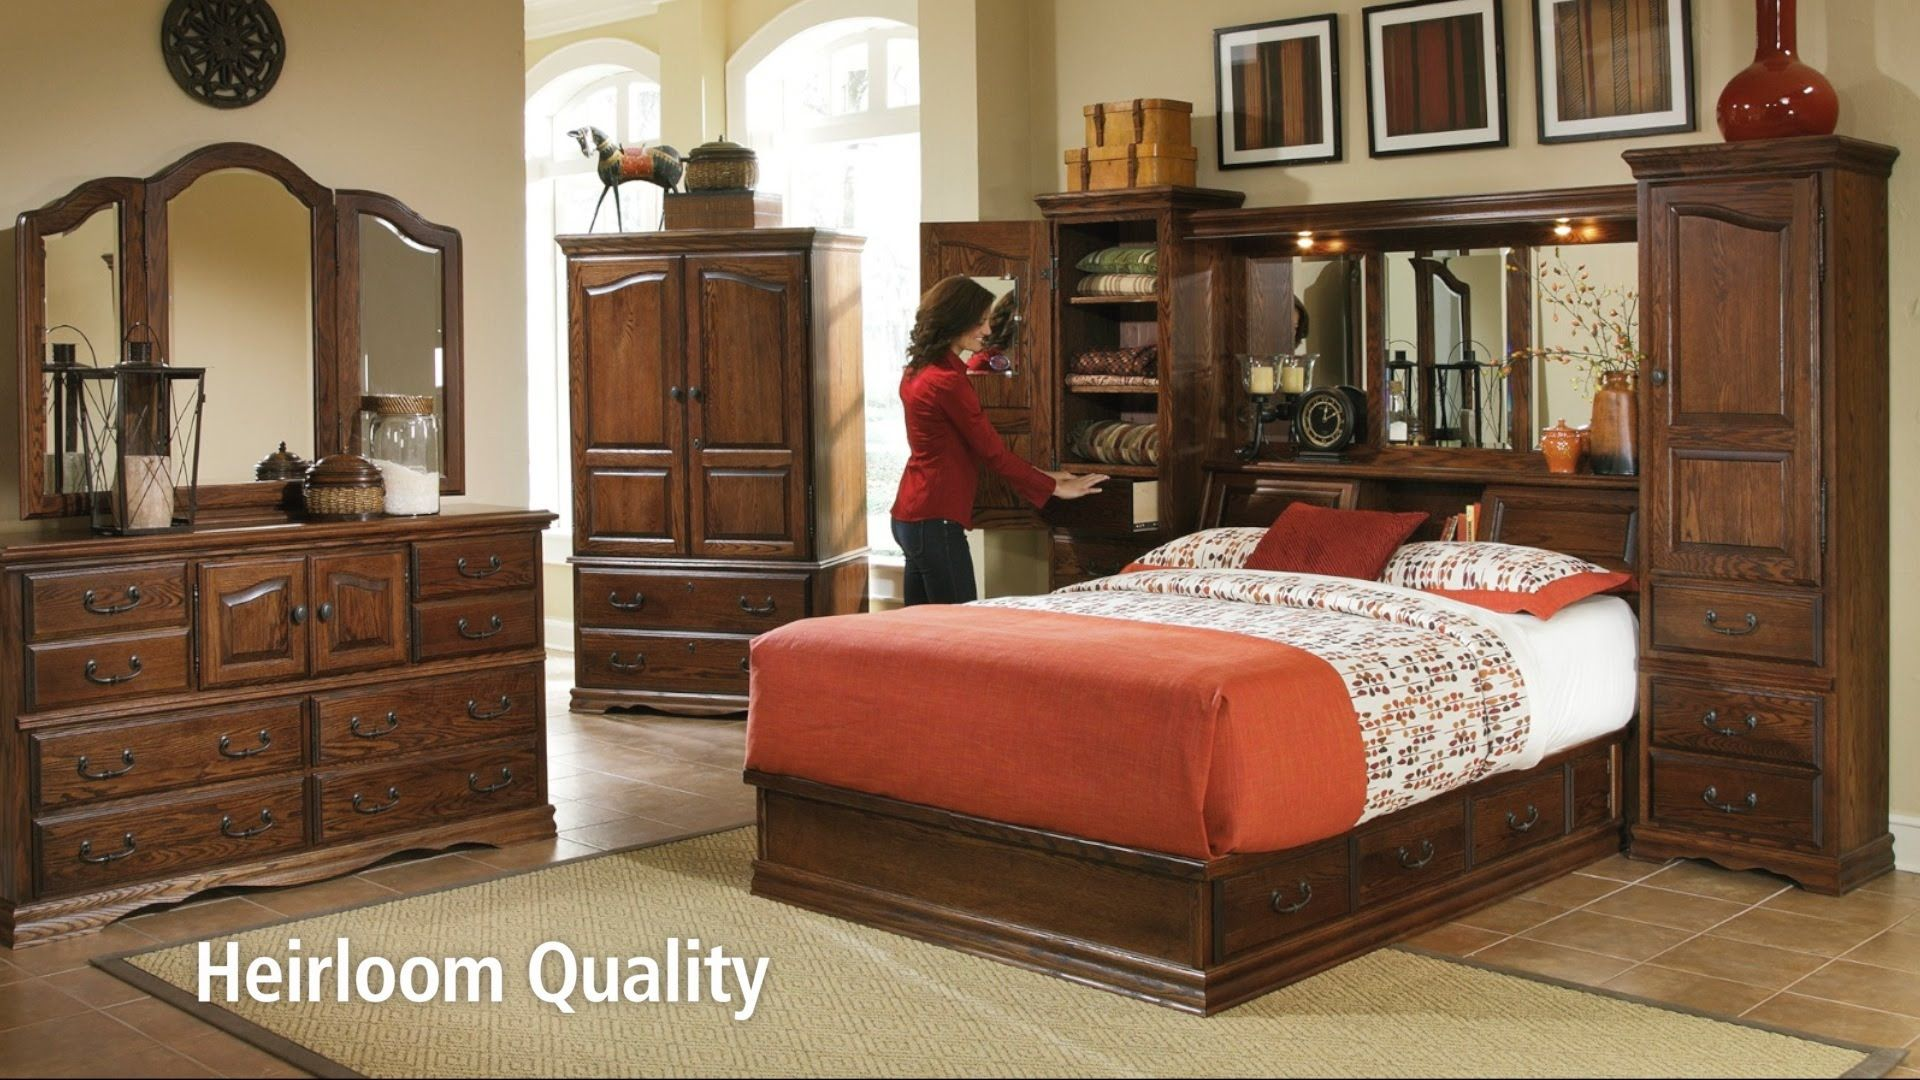 Oak bedroom furniture special features by furniture traditions